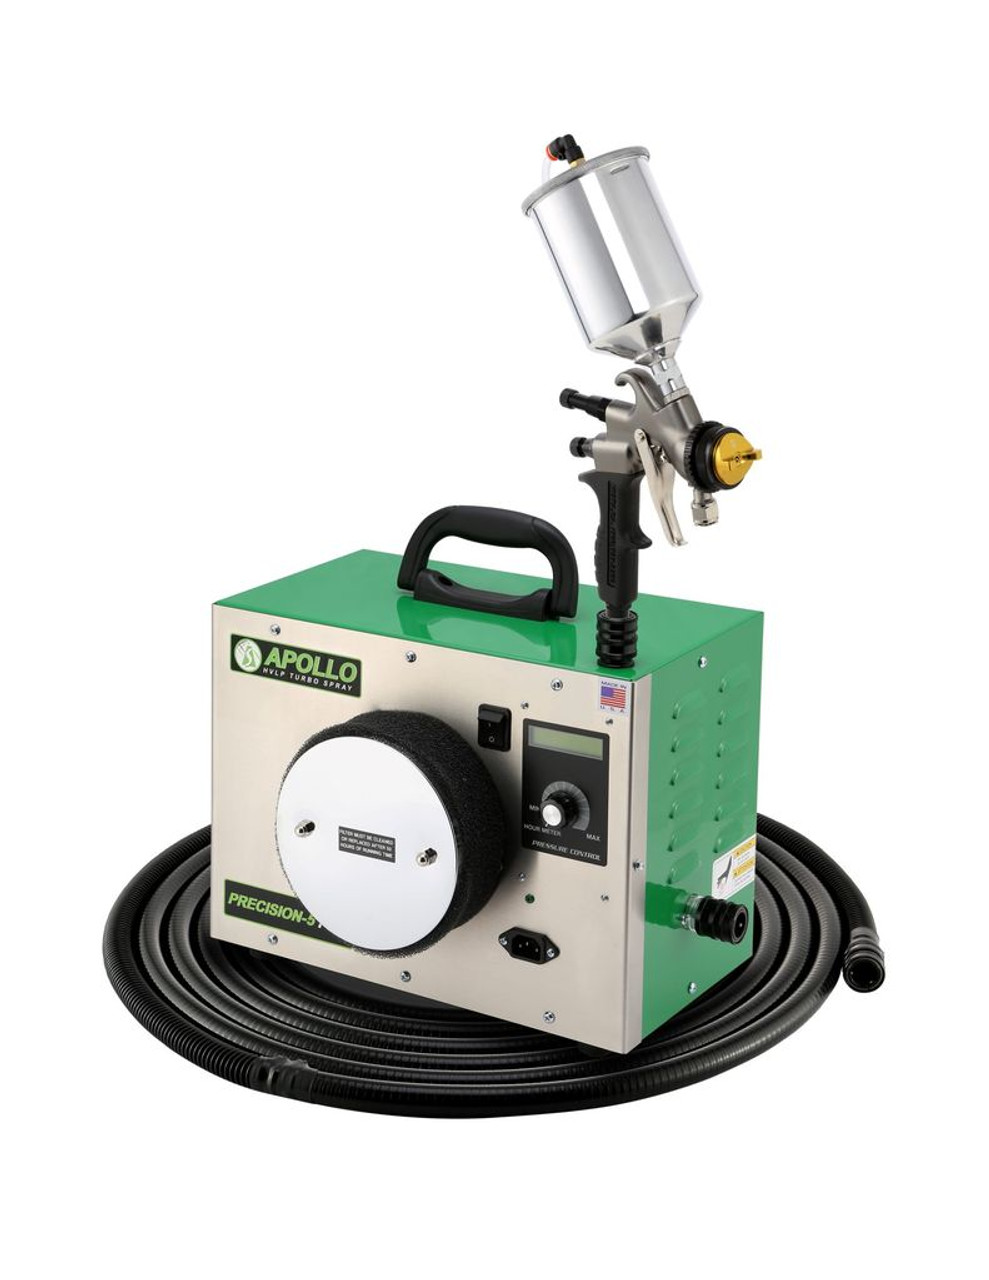 """Apollo - 5-Stage Precision 5 Pro, 120 volt motor, with internal bleed, Includes 32"""" Air Flex Hose, A7700GT-600 Spray Gun with A5034A 600cc cup. (P51107500GT600)"""